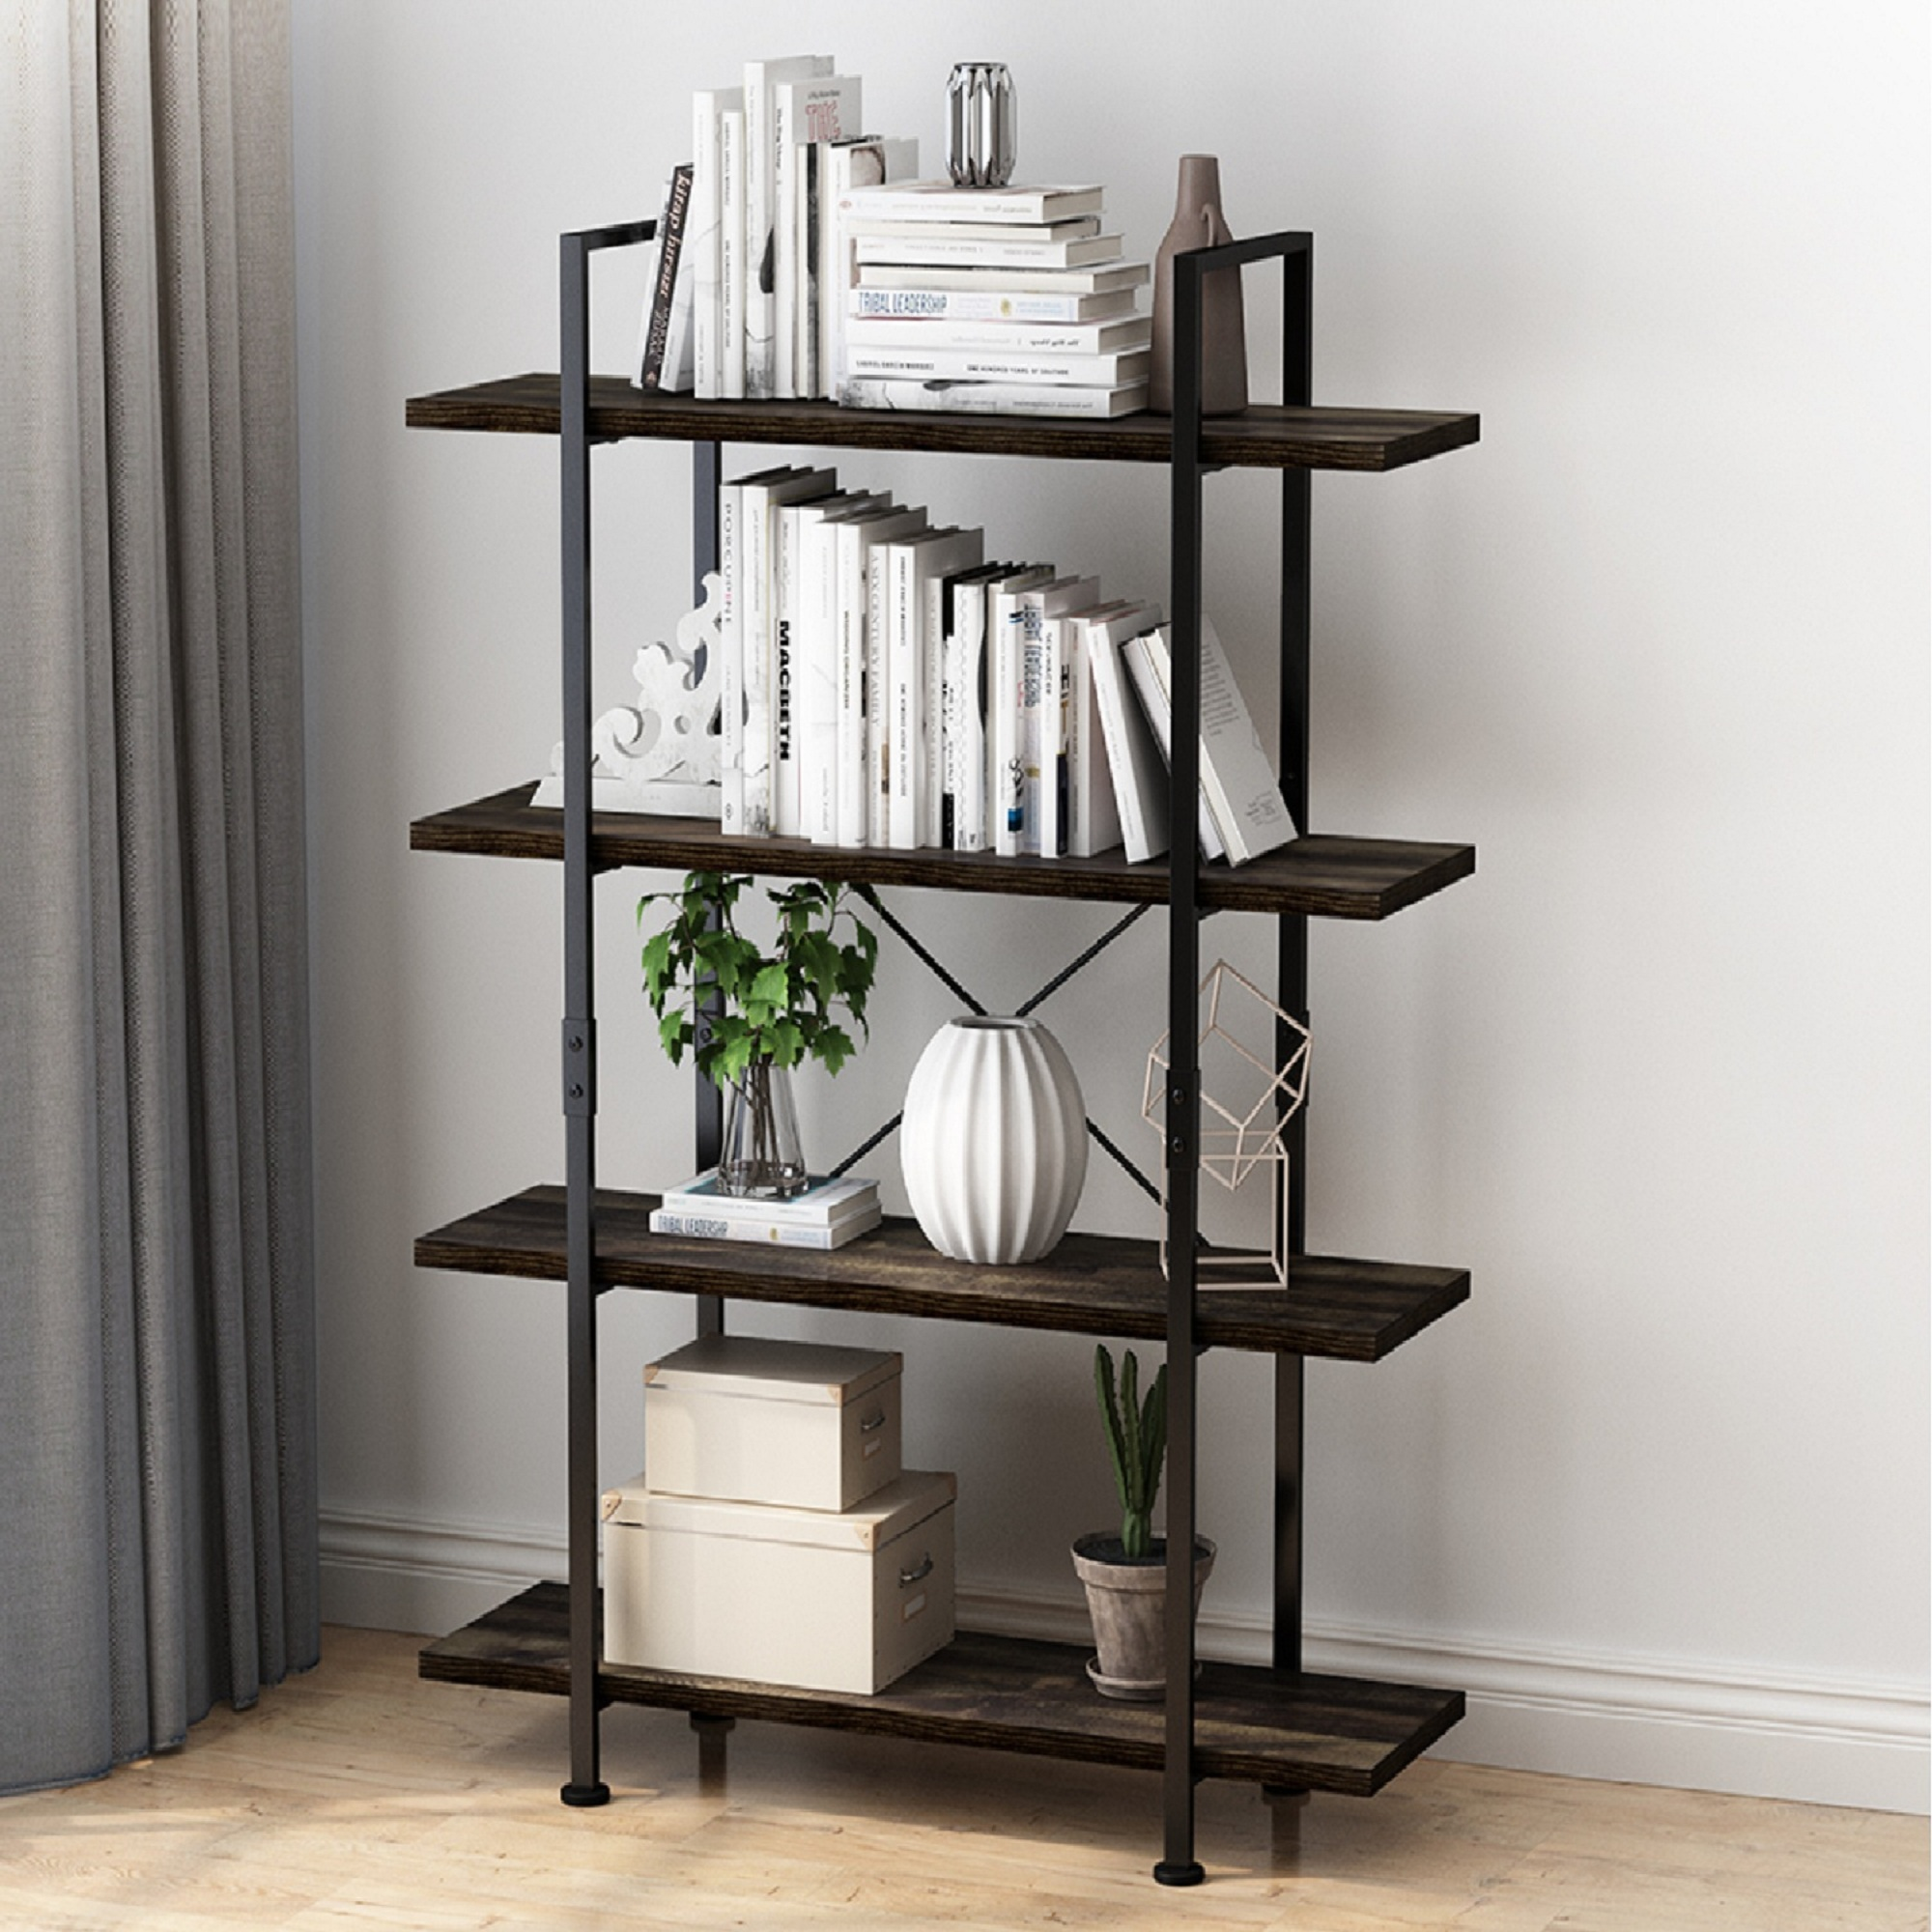 4 Tier Open Back Storage Bookshelf Industrial 54 3 Inches H Bookcase Decor Display Shelf Living Room Home Office Natural Solid Reclaimed Wood